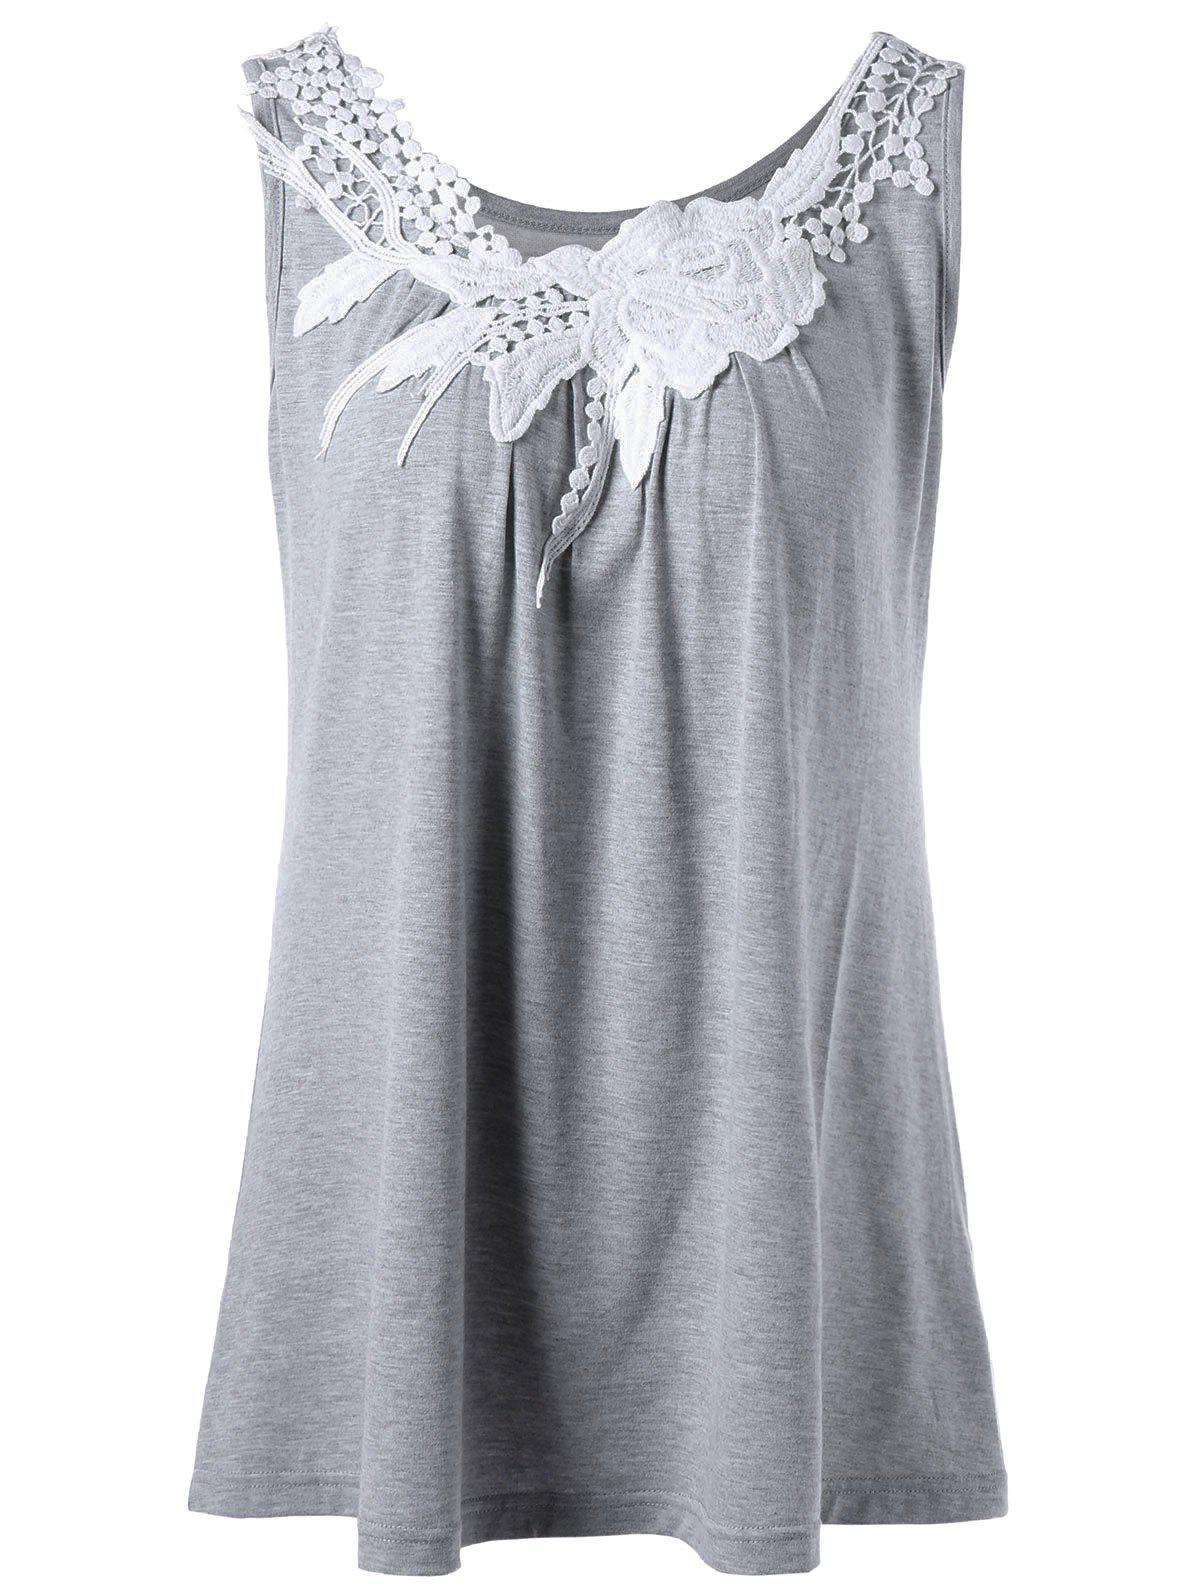 Floral Lace Insert Tank Top - GRAY 2XL